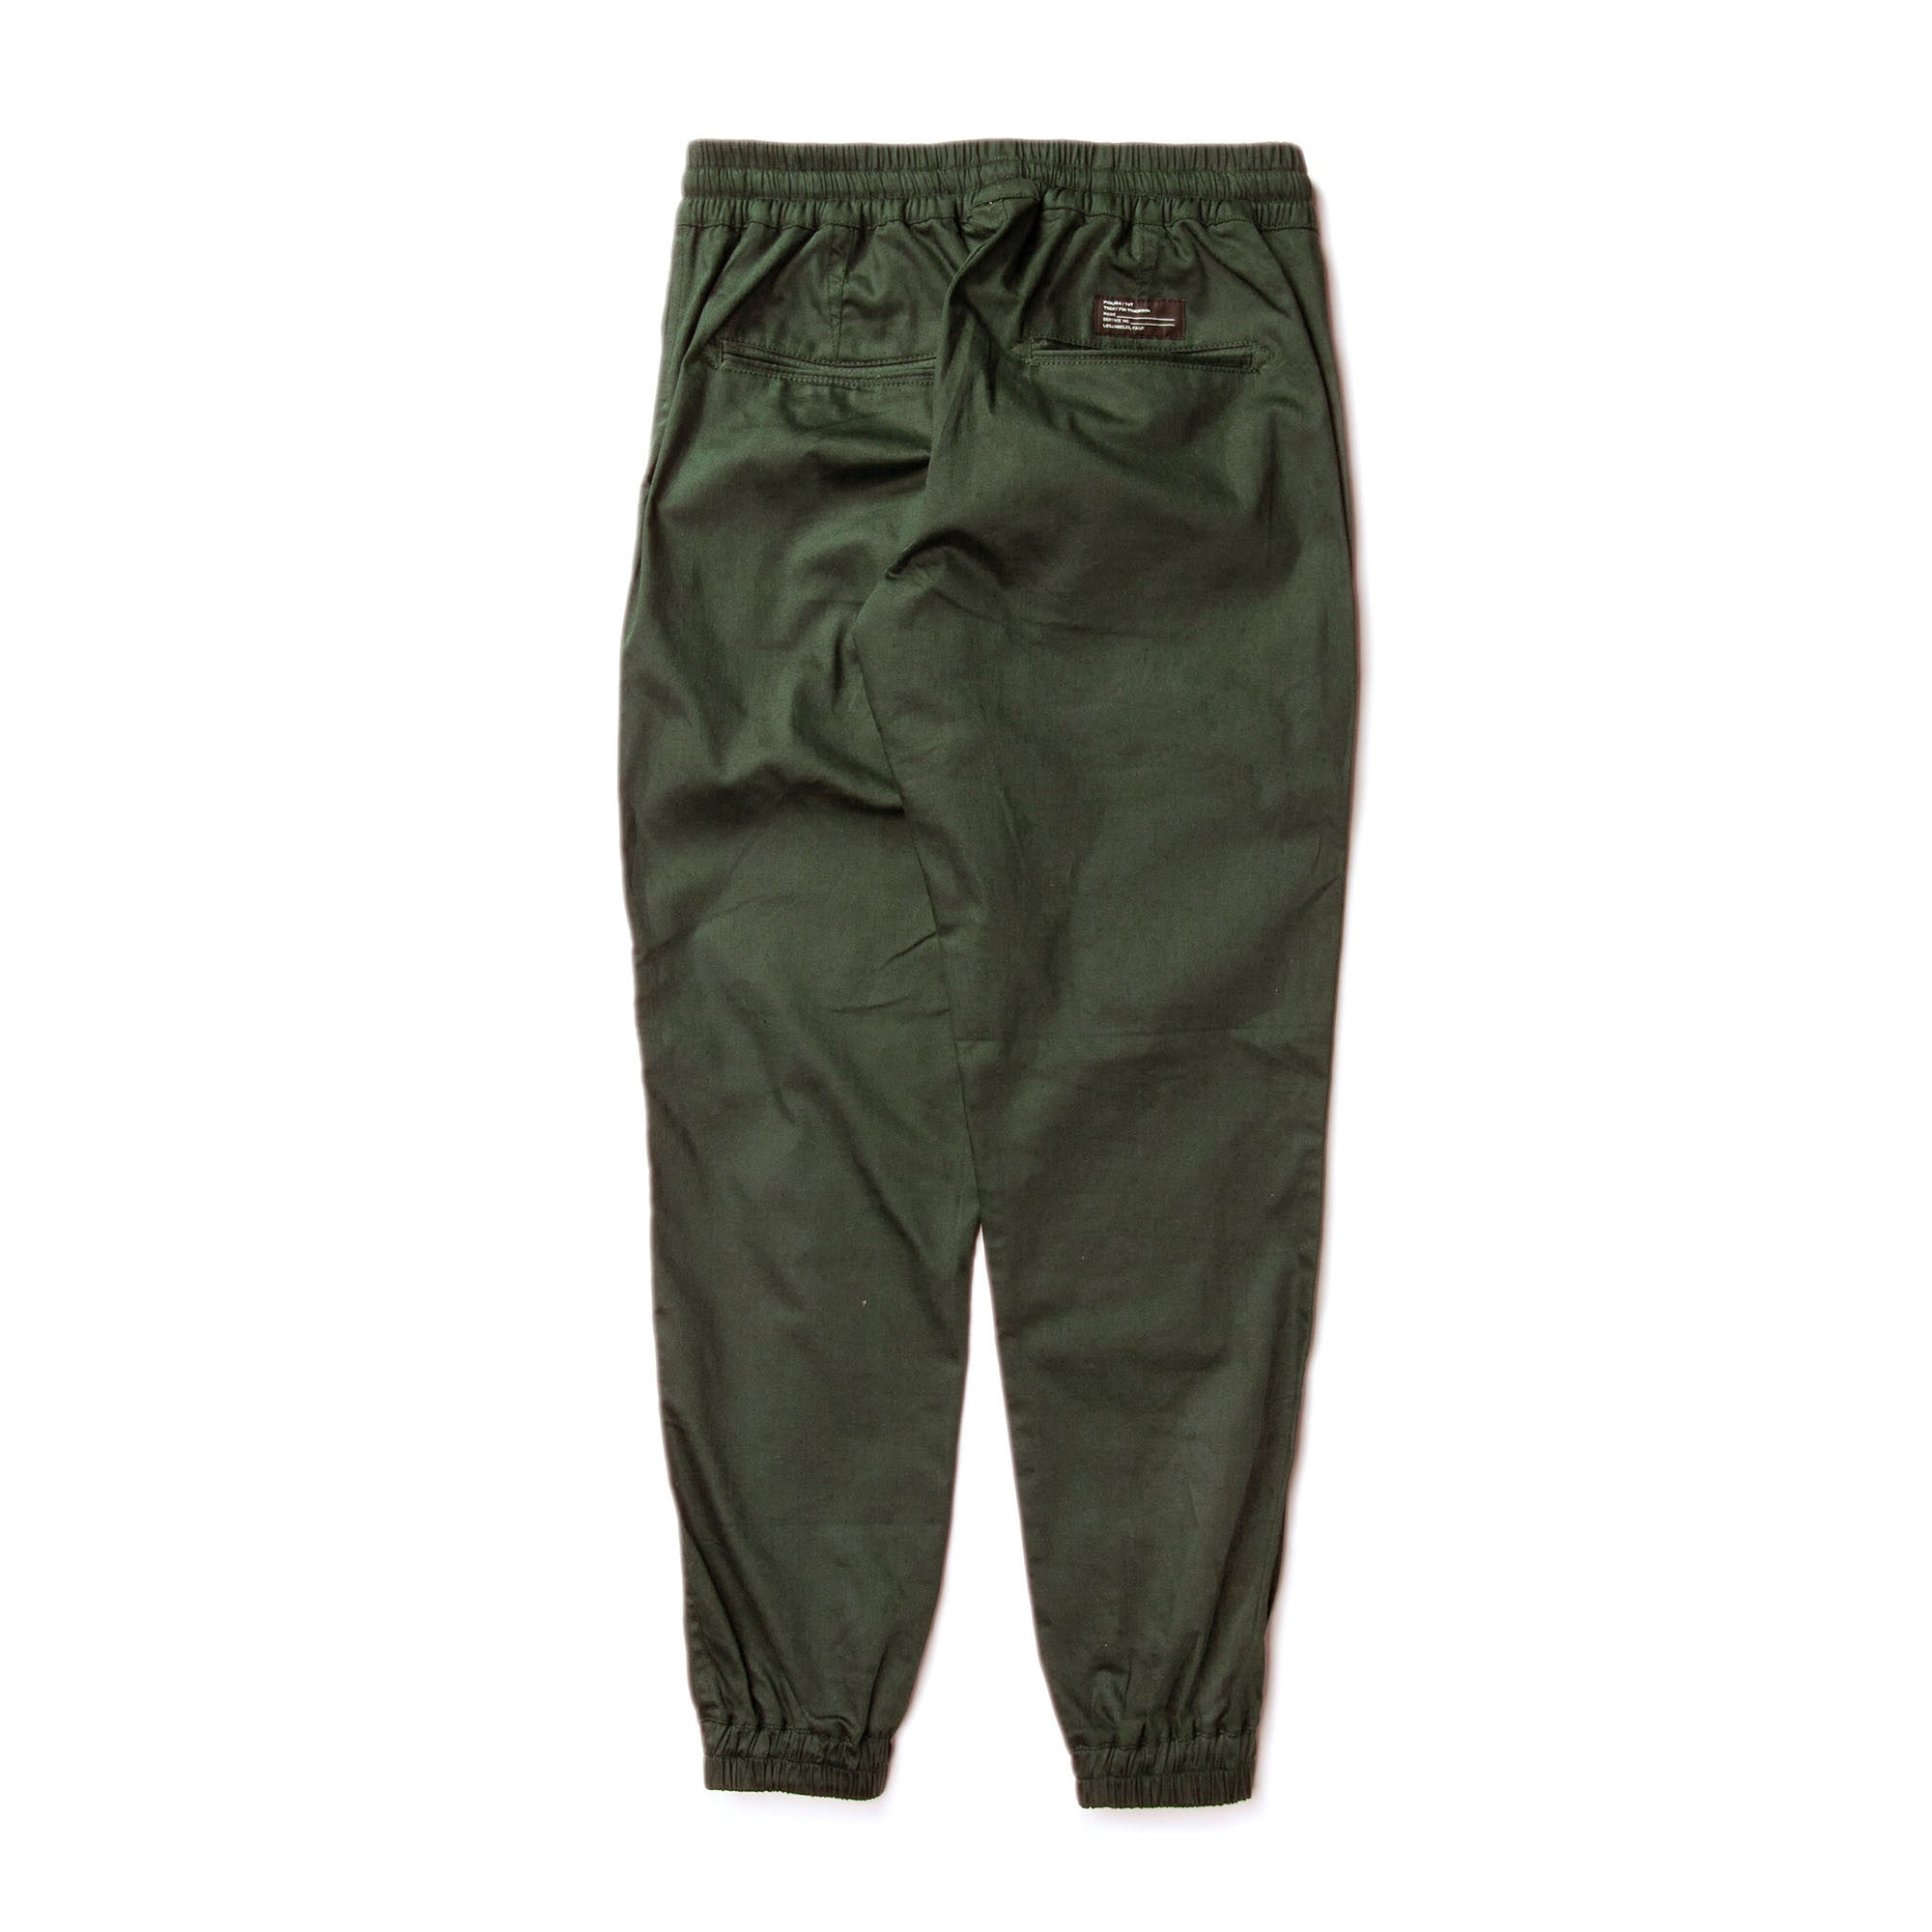 Publish Sprinter Jogger - Olive-Pants 褲款-Navy Selected Shop